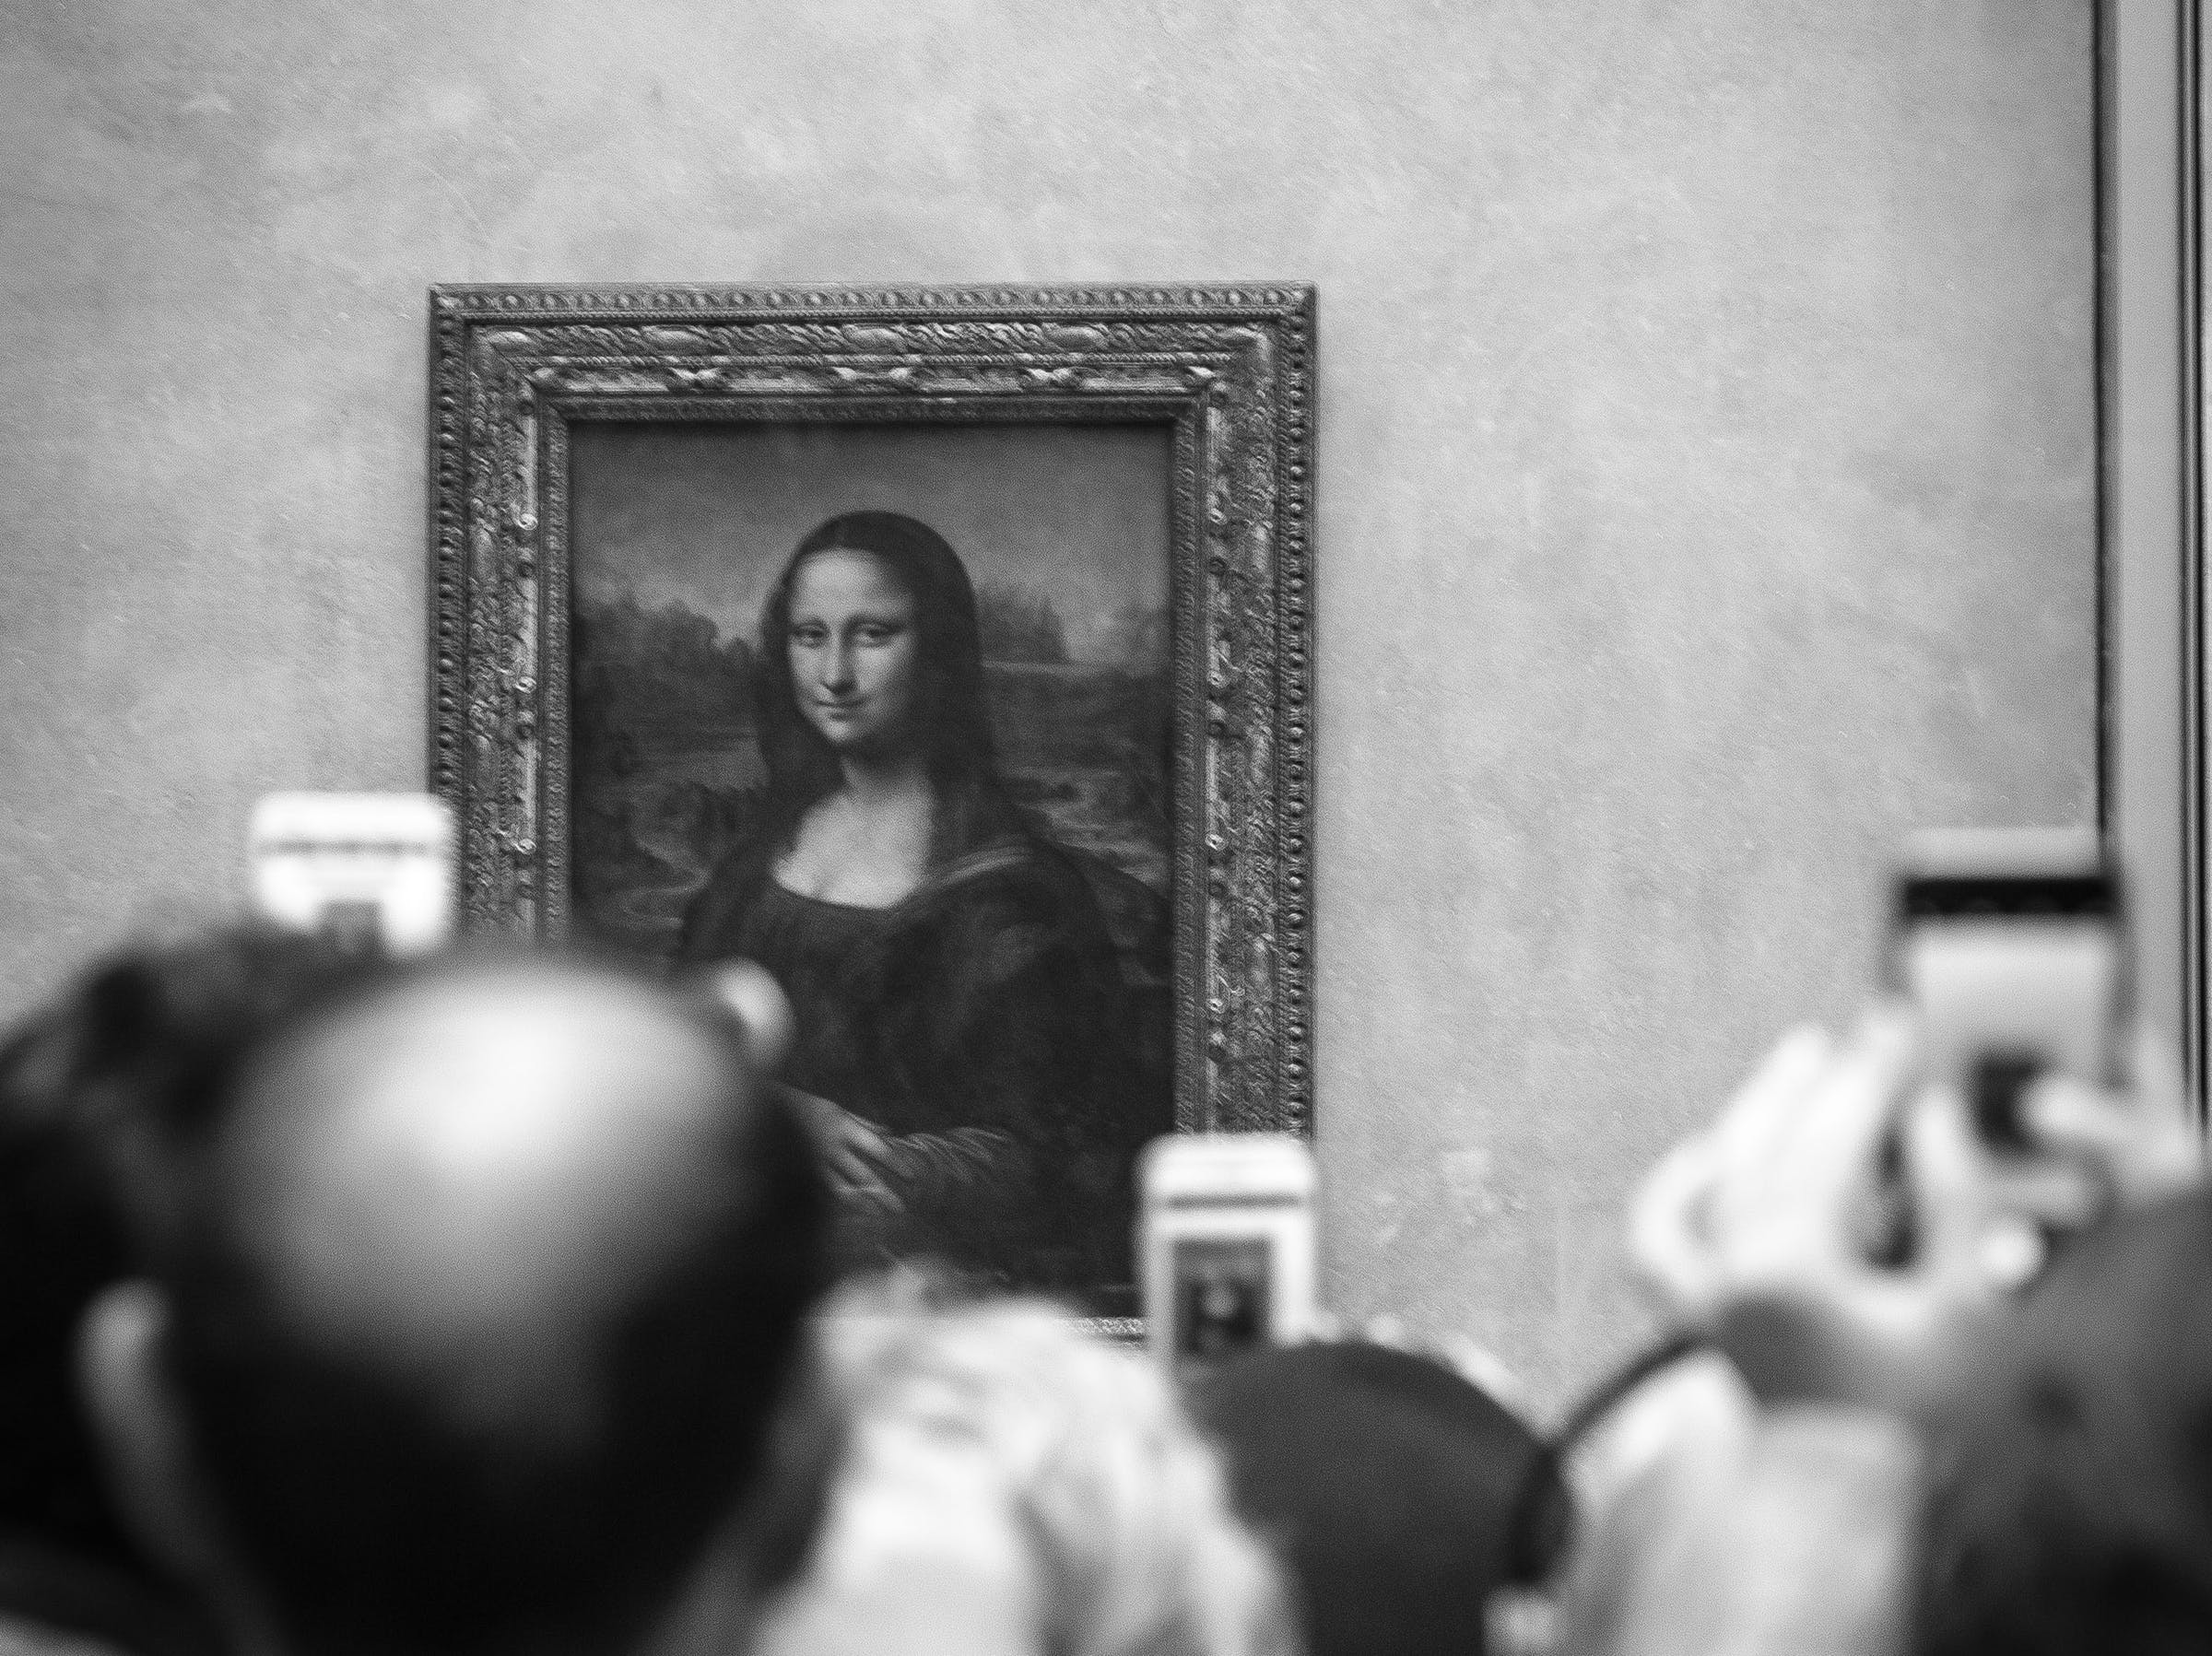 Mona Lisa: Physician Diagnosis Solves Mystery of Enigmatic